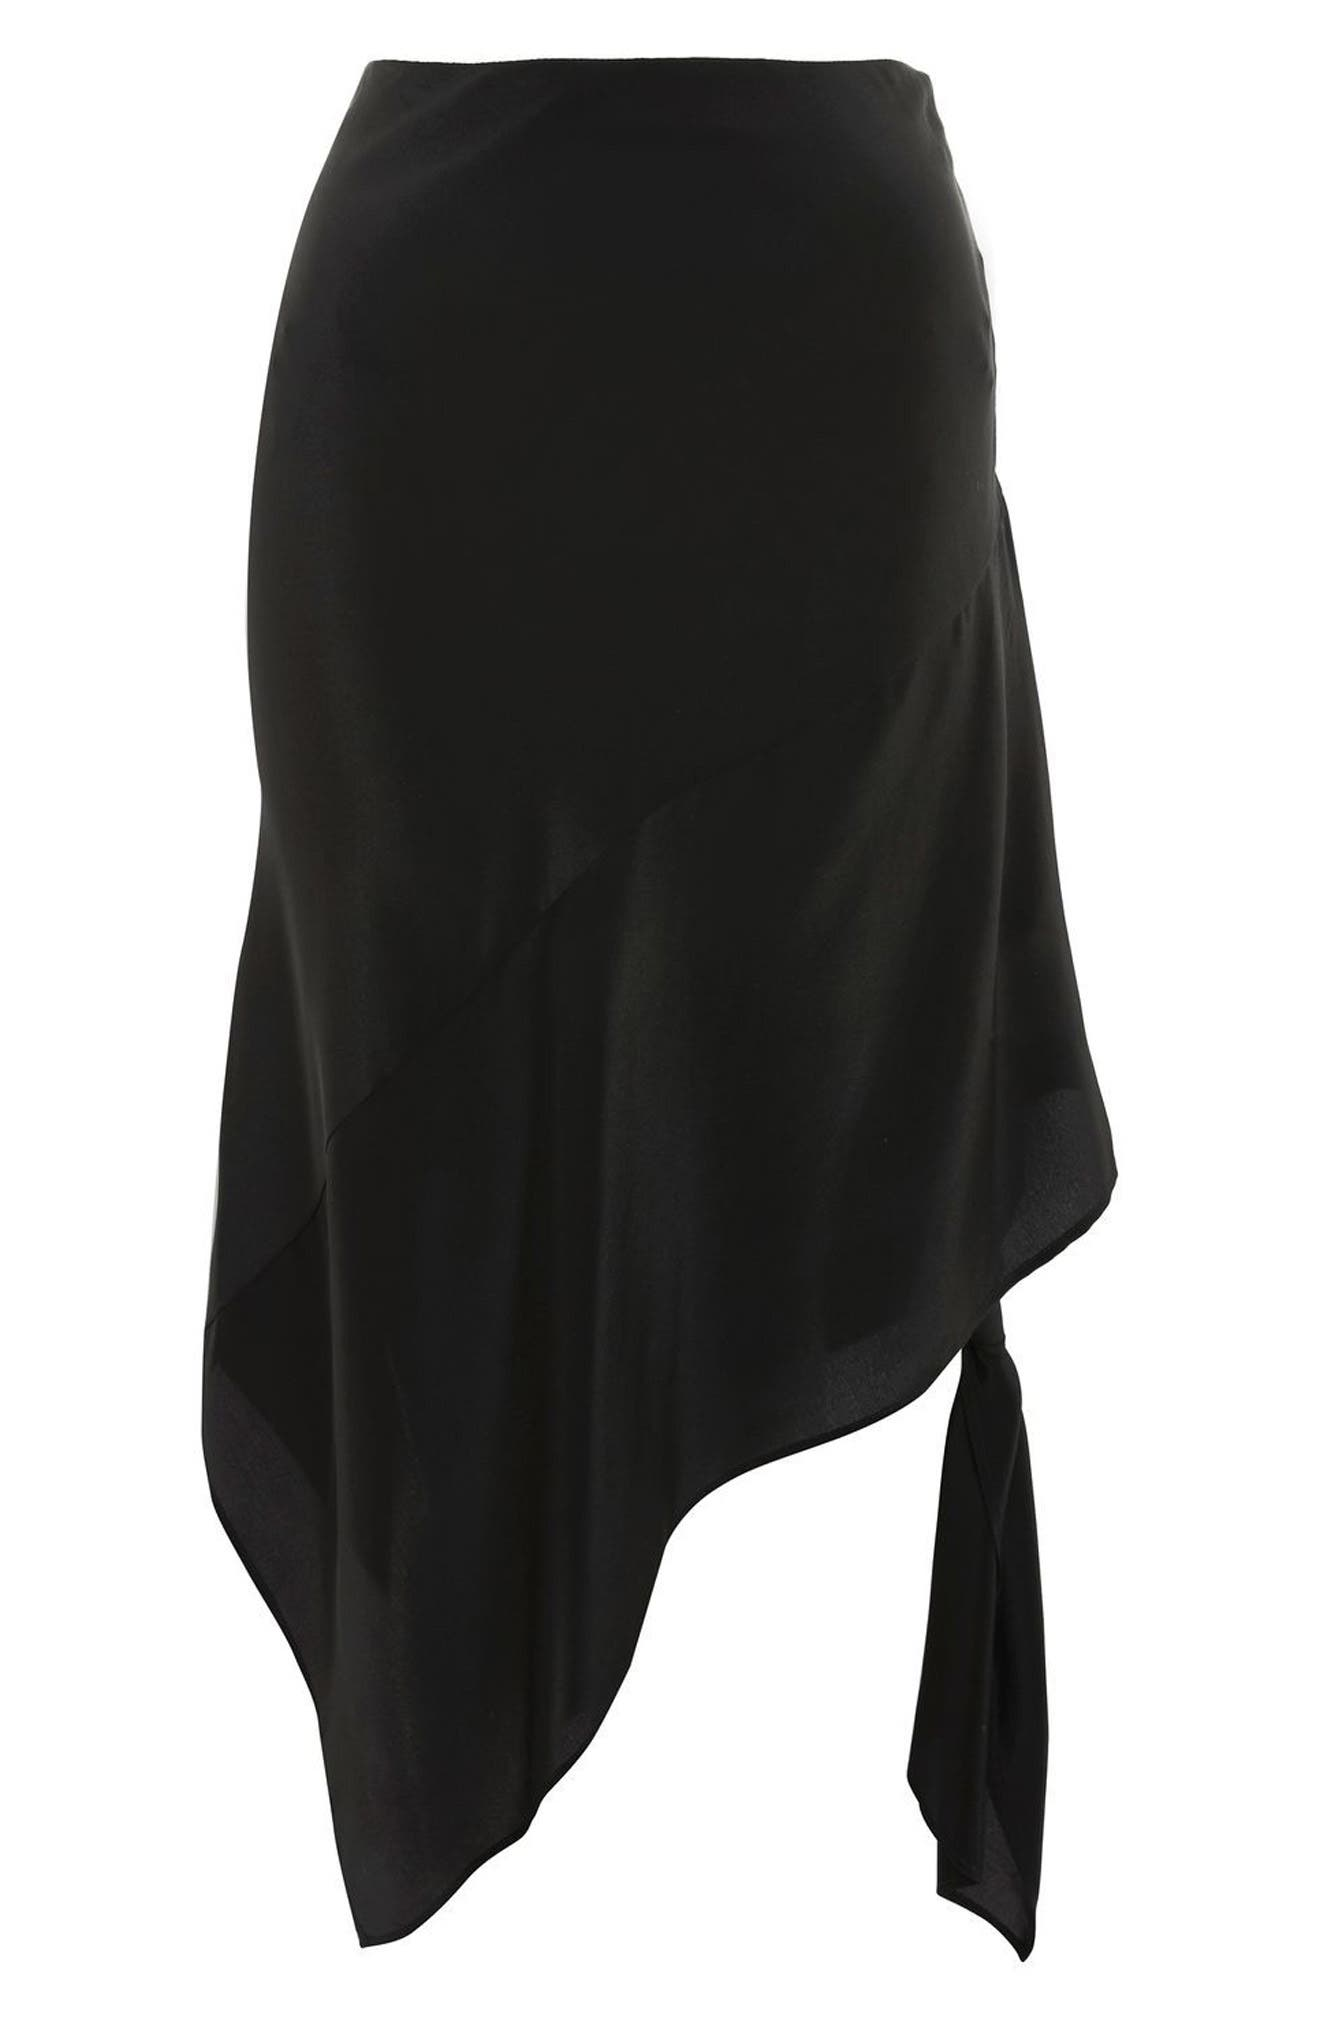 Topshop Boutique Silk Knot Side Skirt